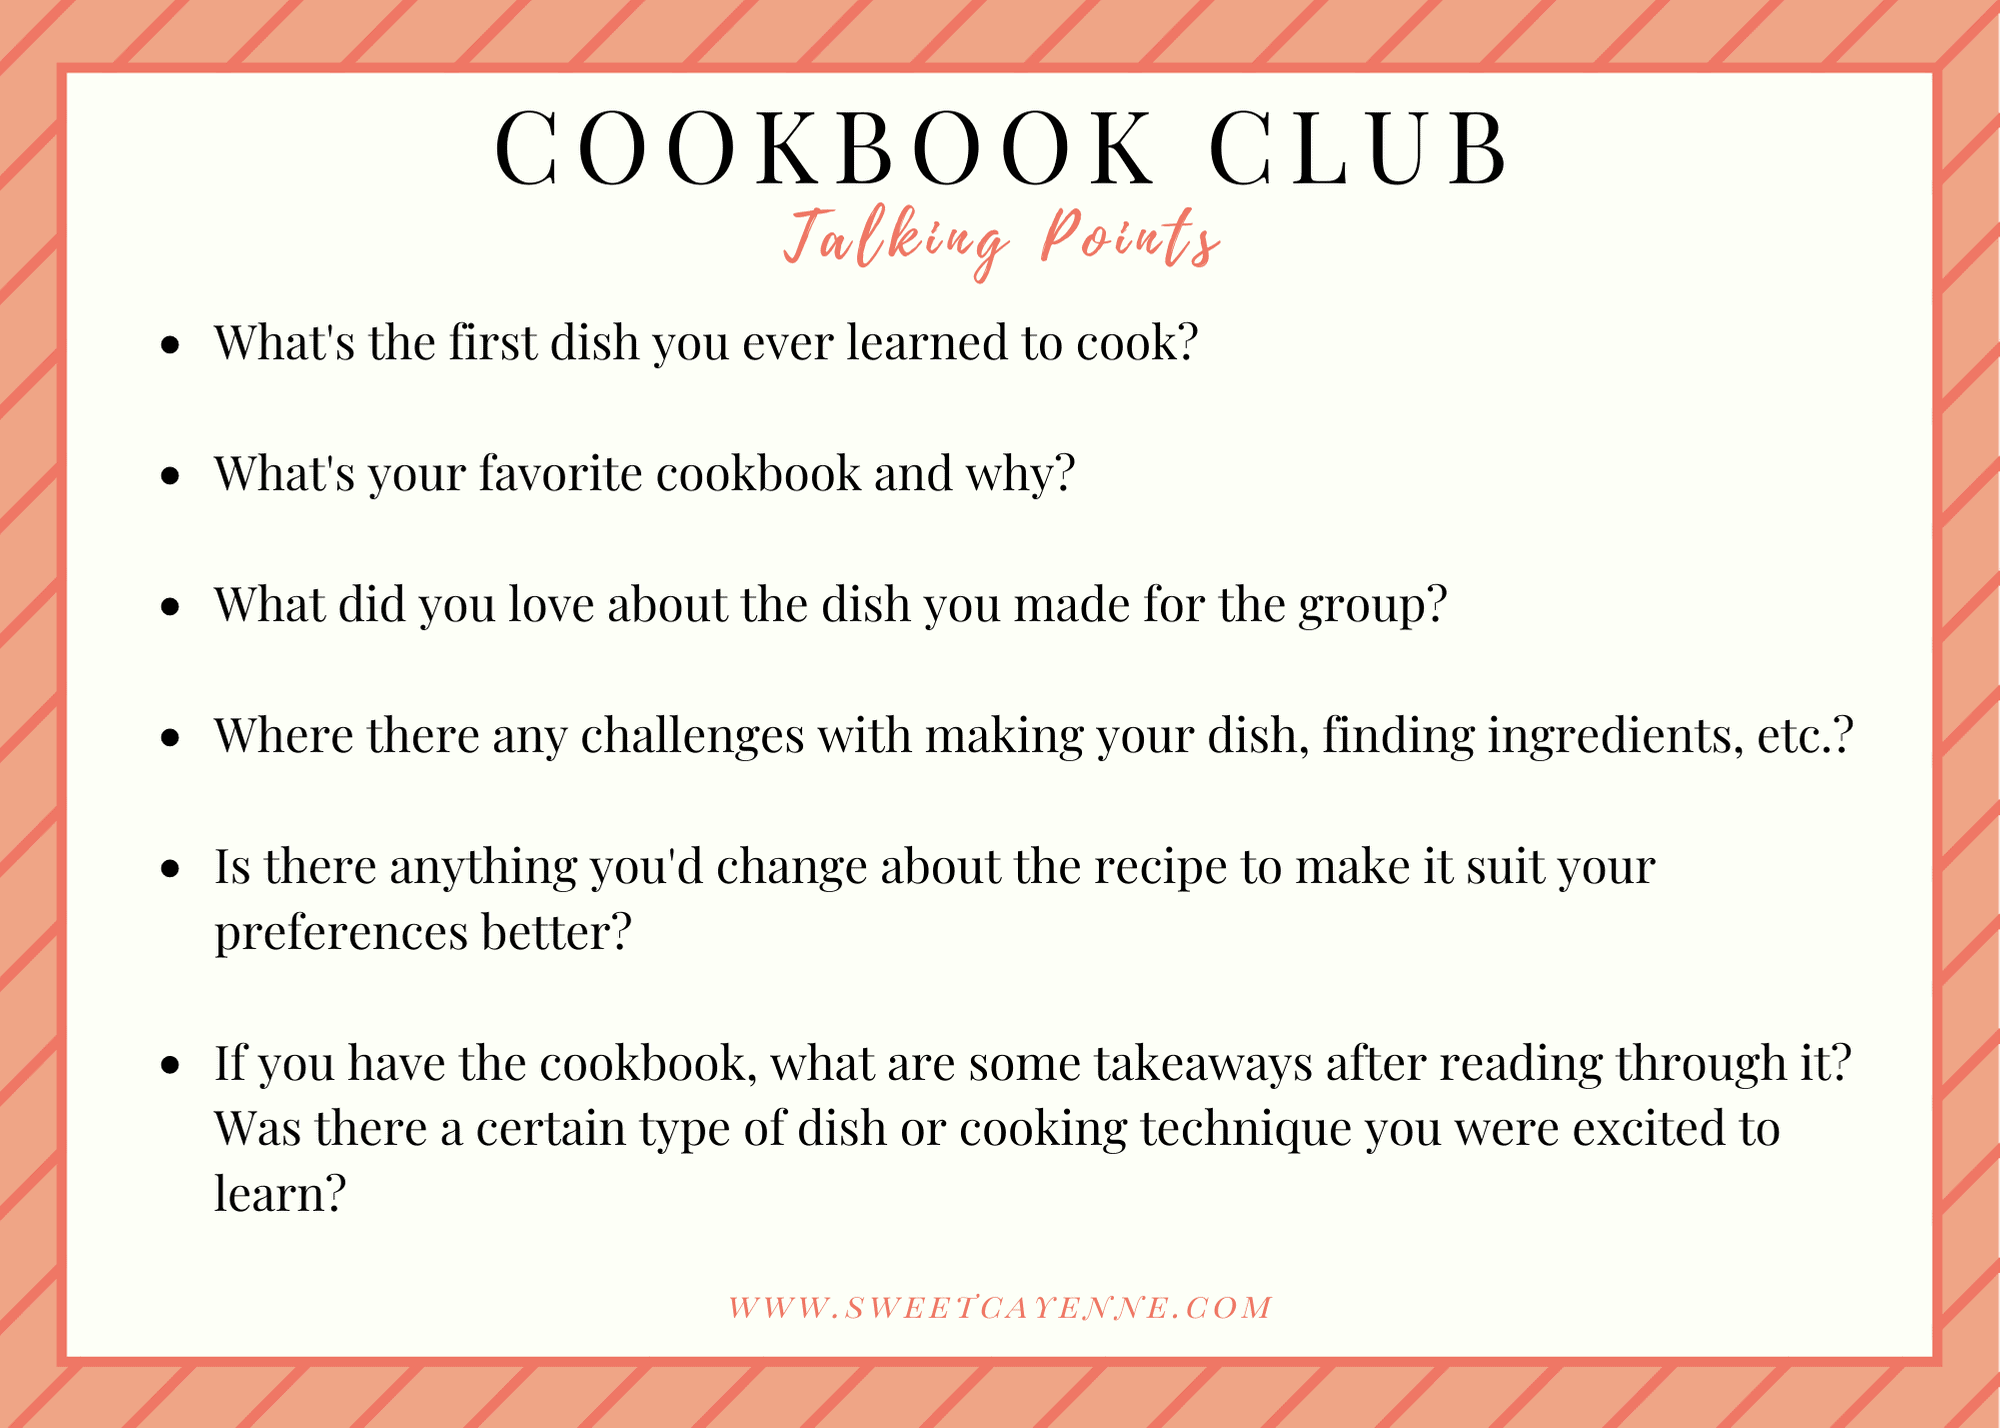 Cookbook club talking points card